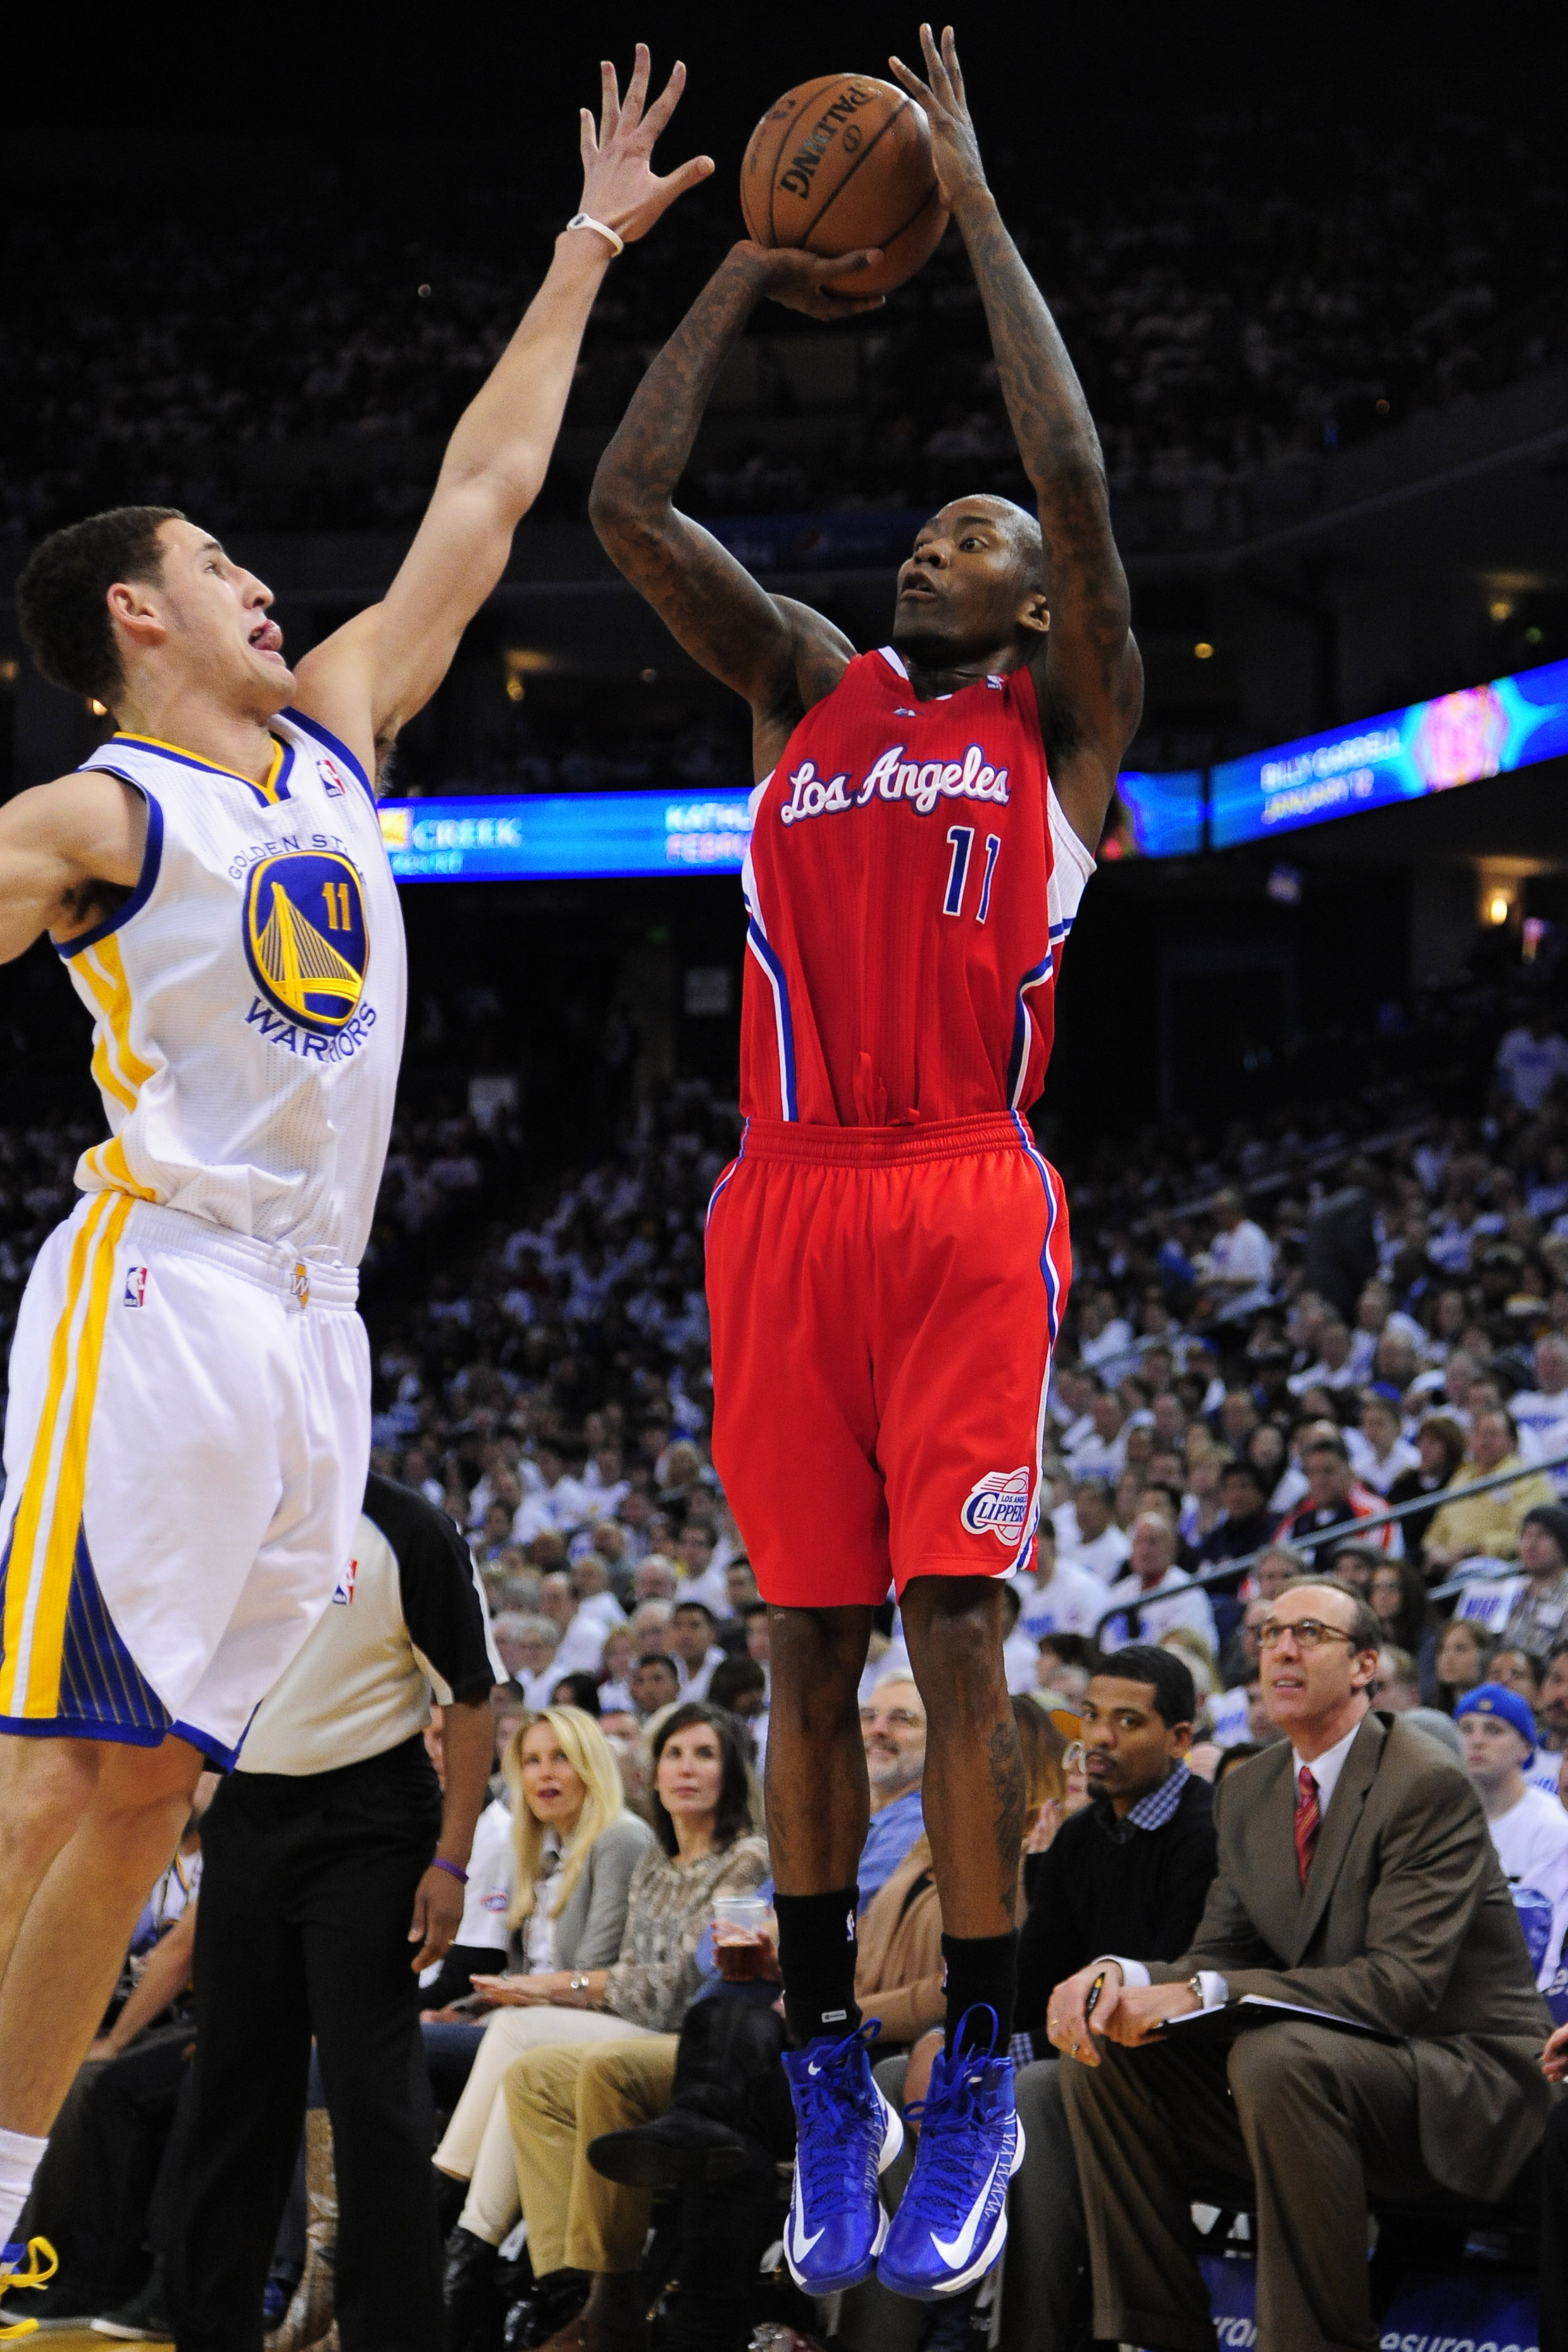 Klay Thompson (L) and Jamal Crawford (R) led the way for the Pacific Northwest Wednesday night.